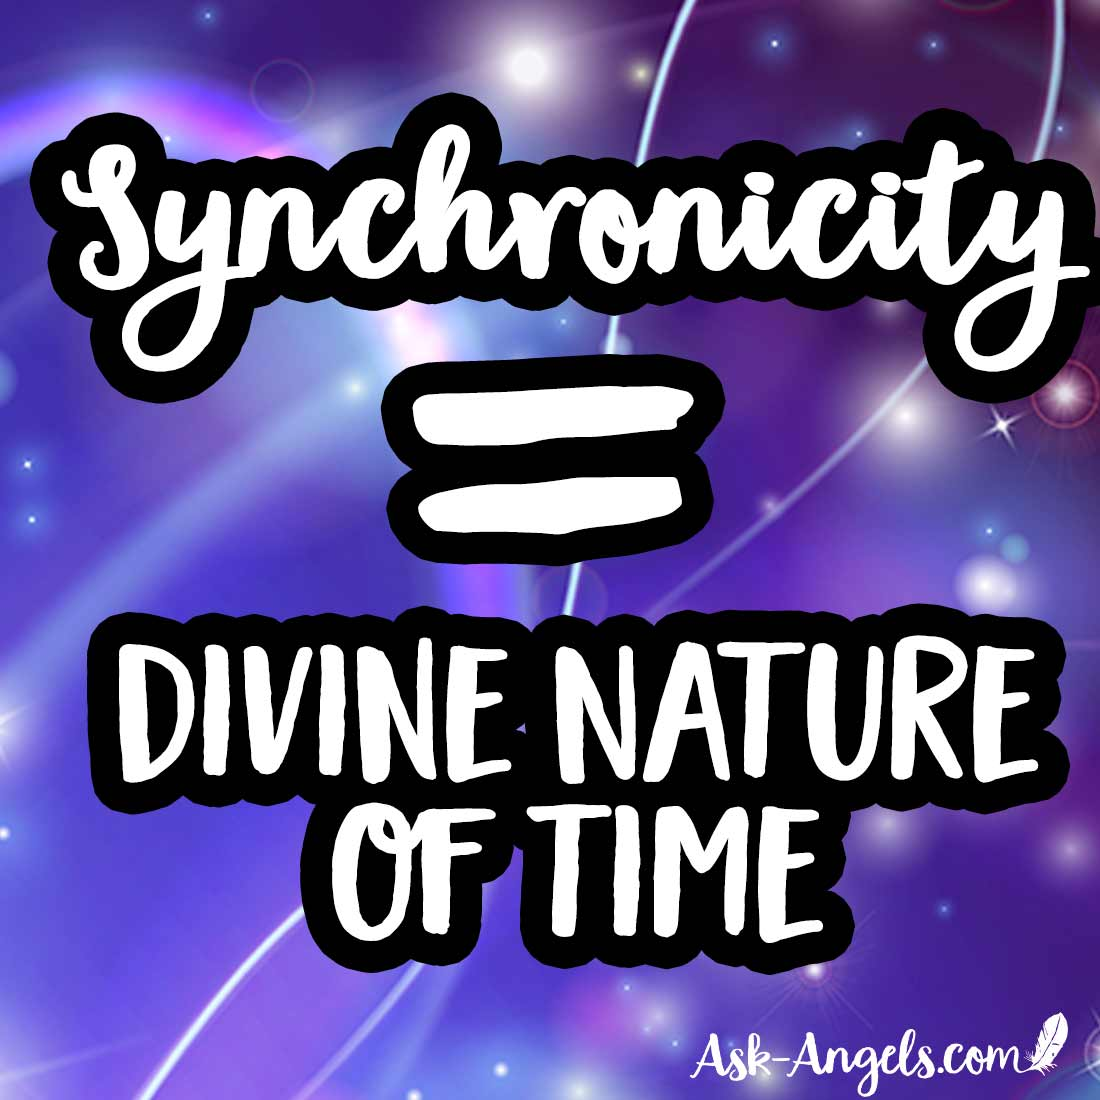 Synchronicity is being in alignment with the Divine Nature of Time